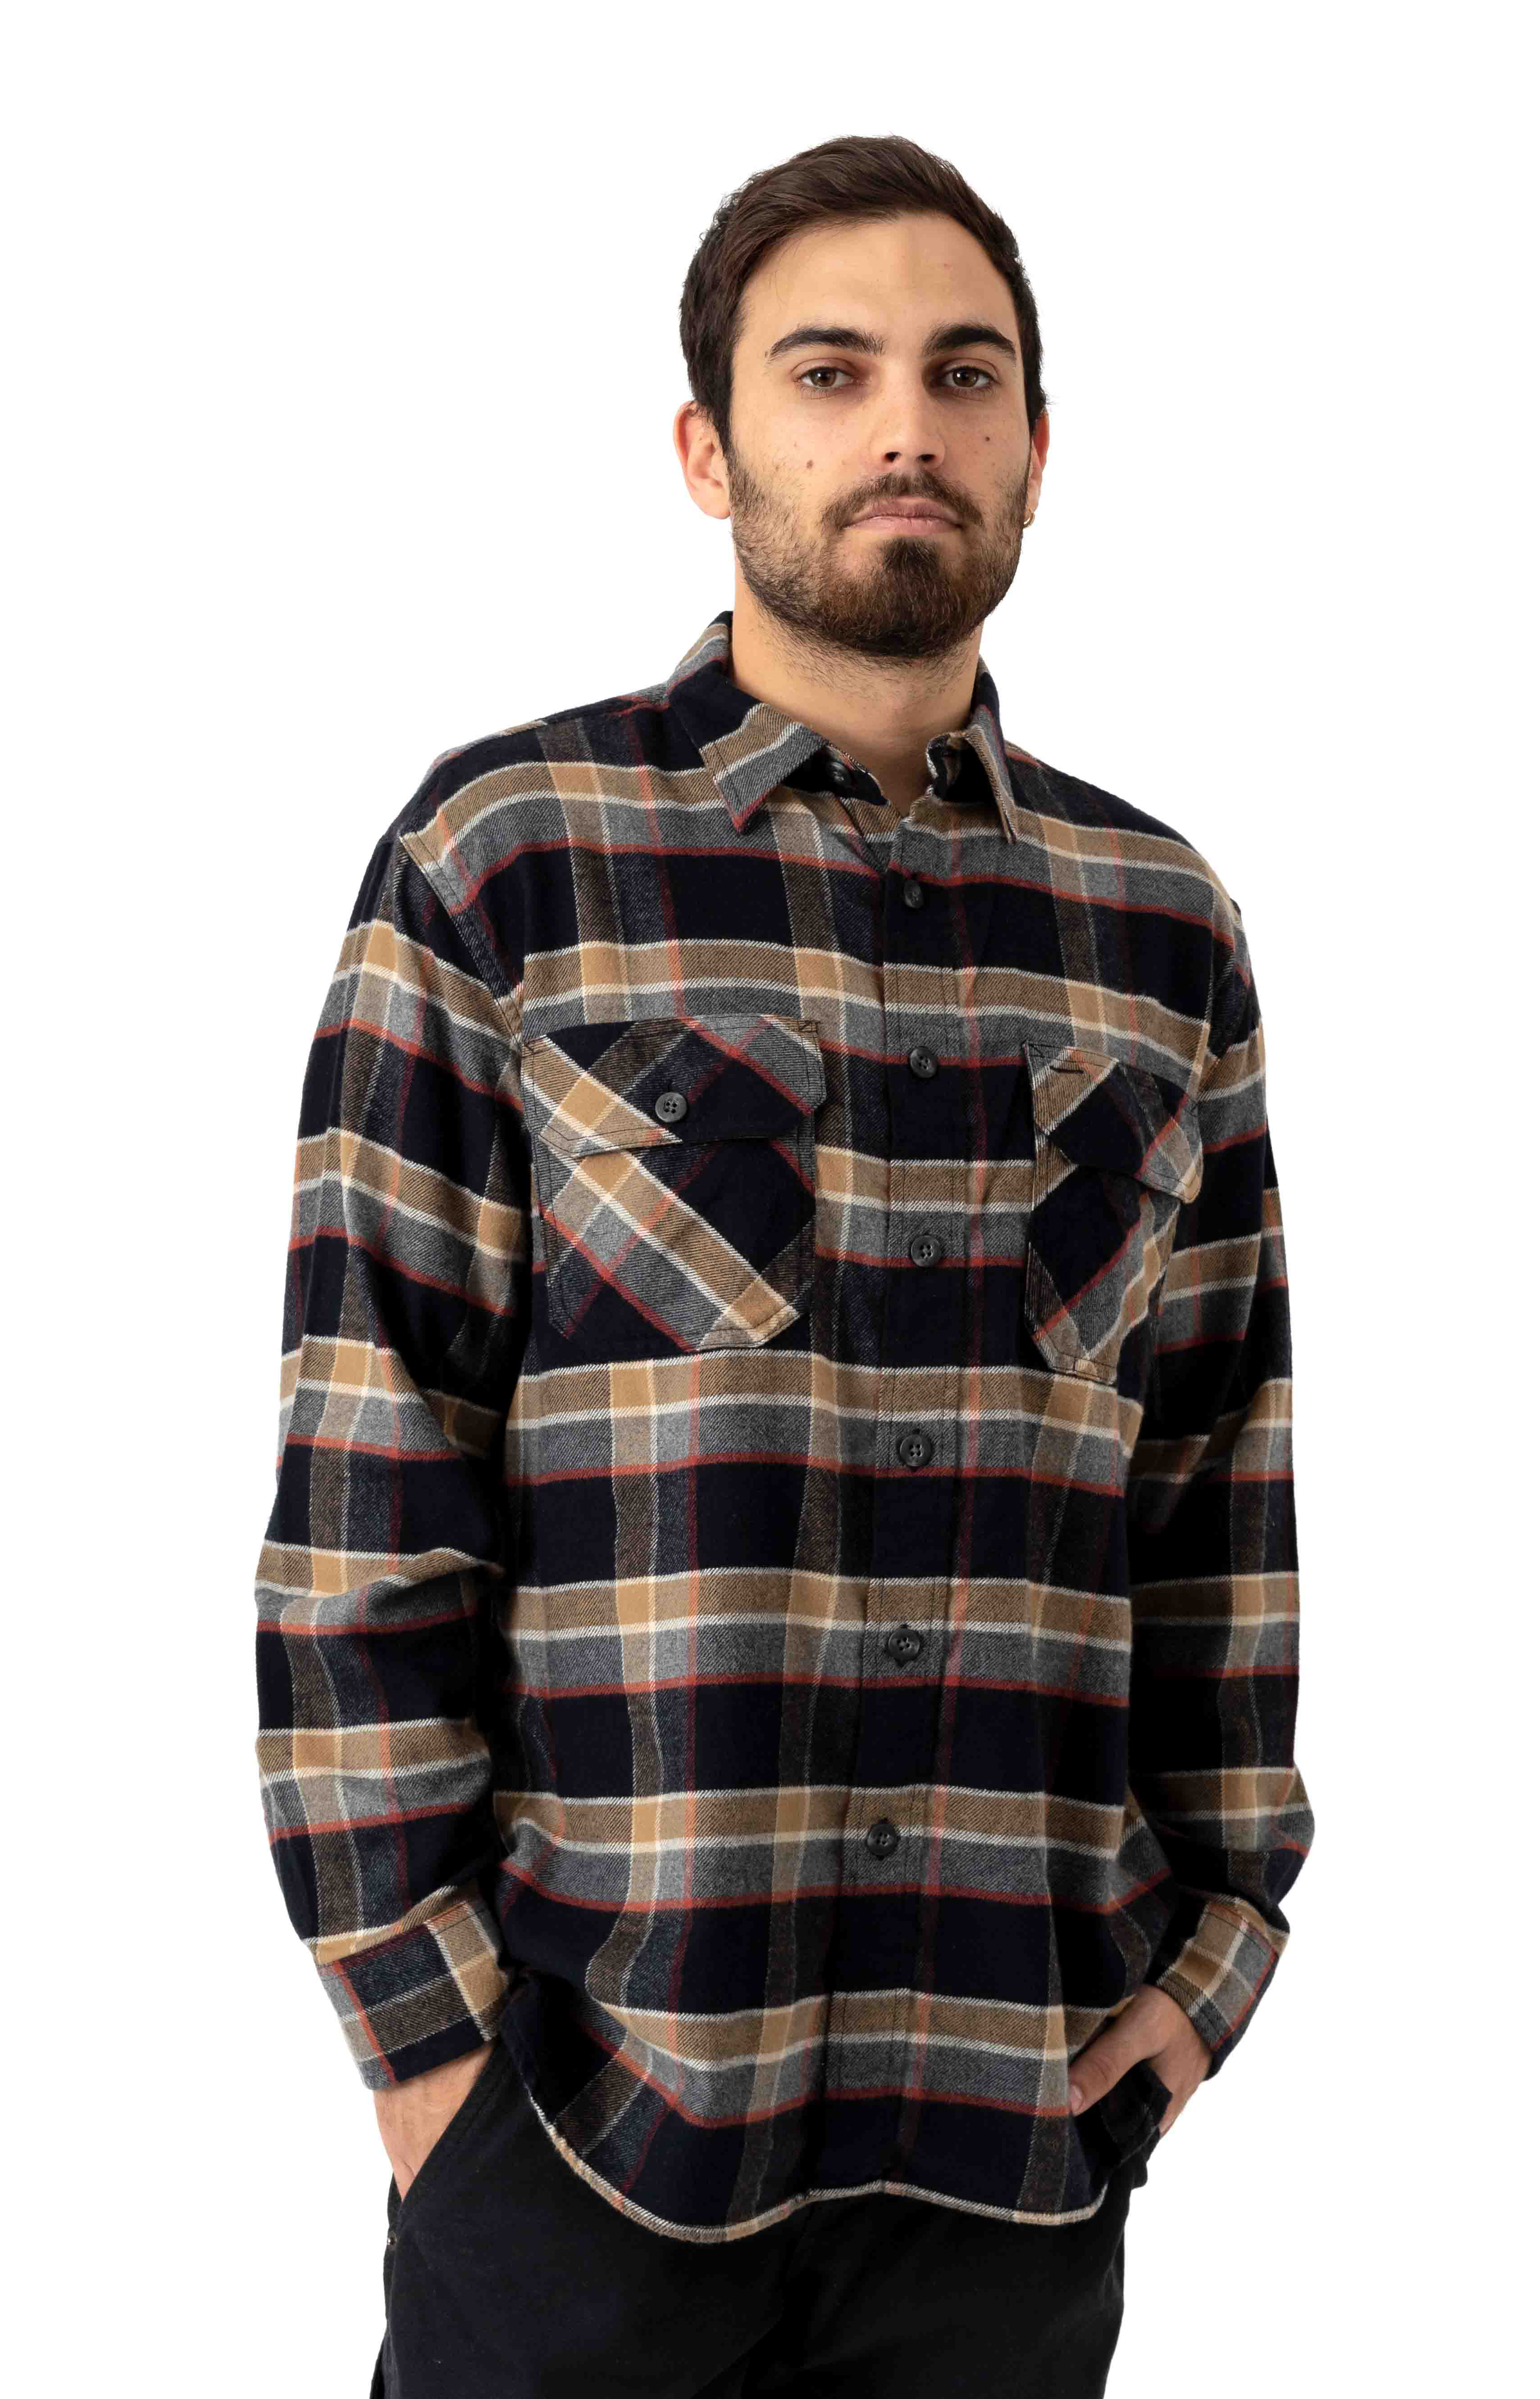 Burnside Flannel Button-Up Shirt - Black/Grey